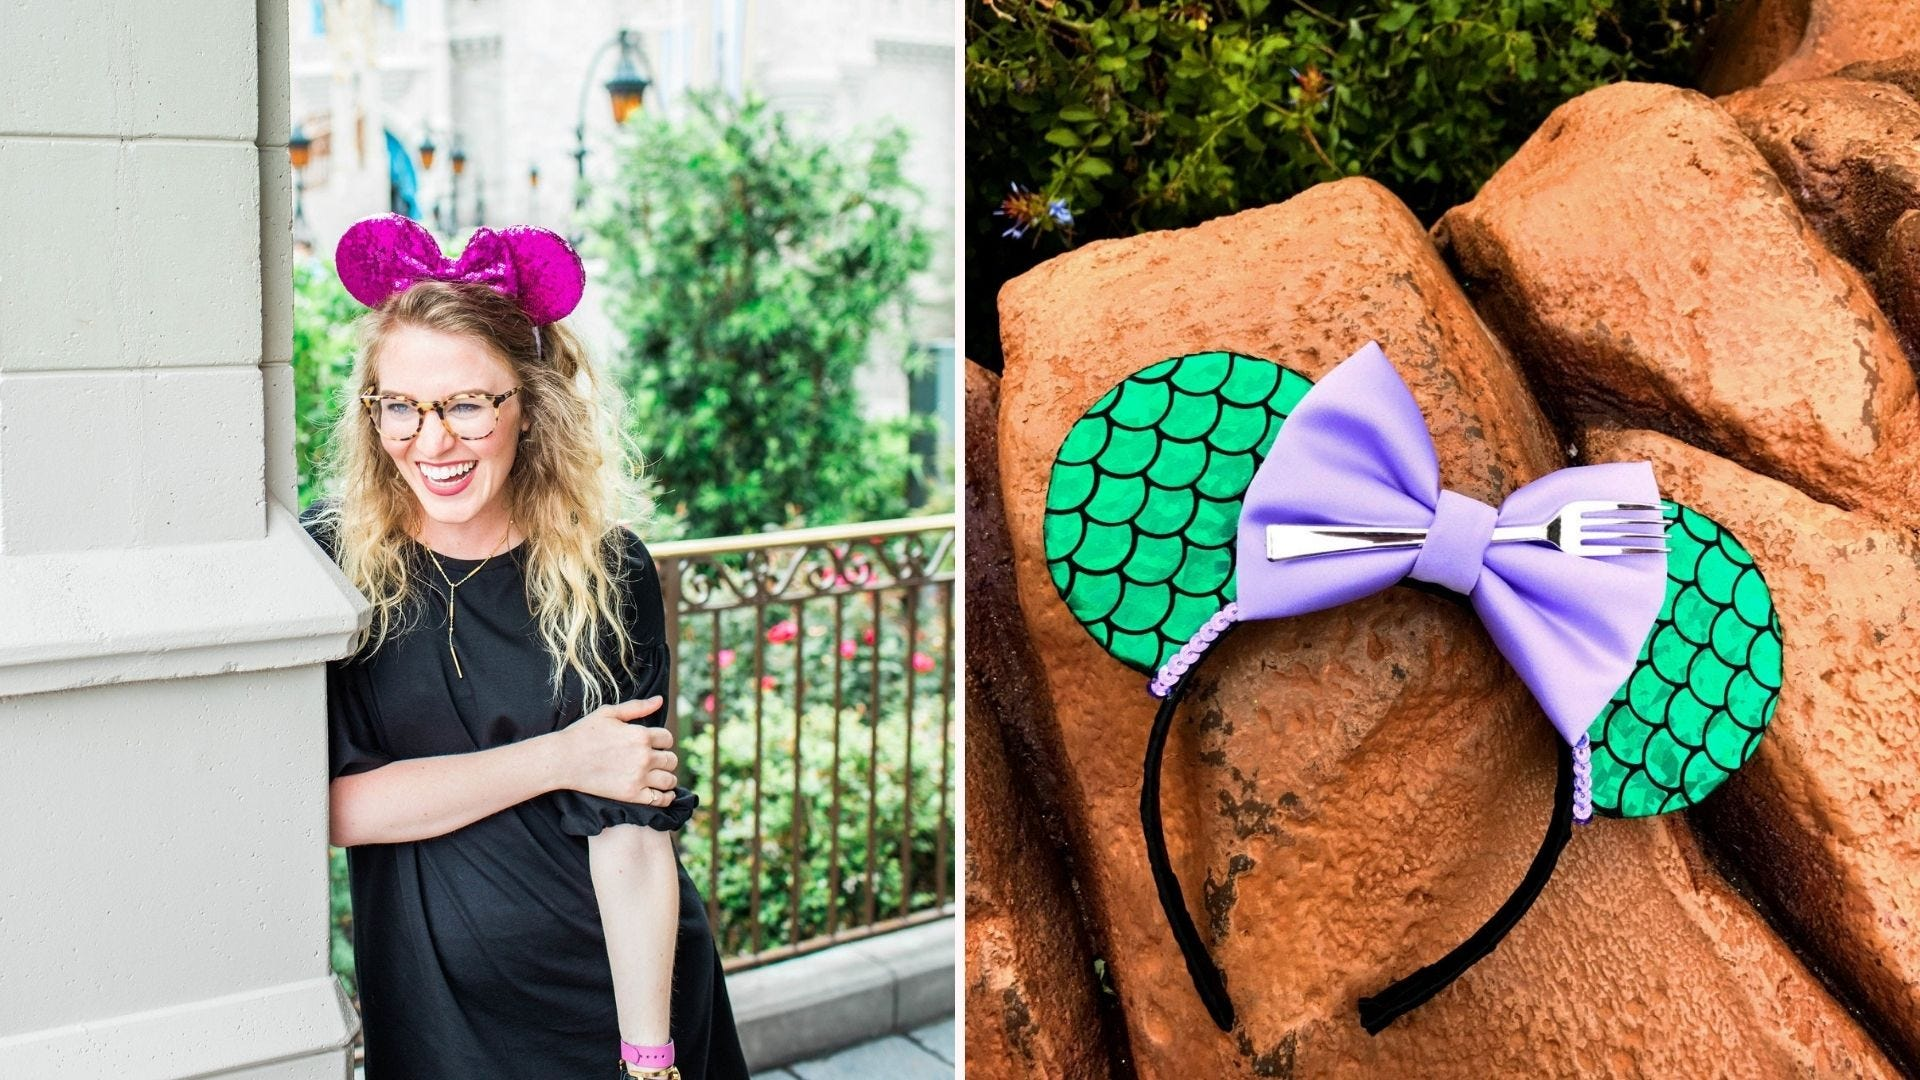 A woman in a black dress wearing fuschia Minnie Mouse ears; a pair of Disney mouse ears themed like The Little Mermaid